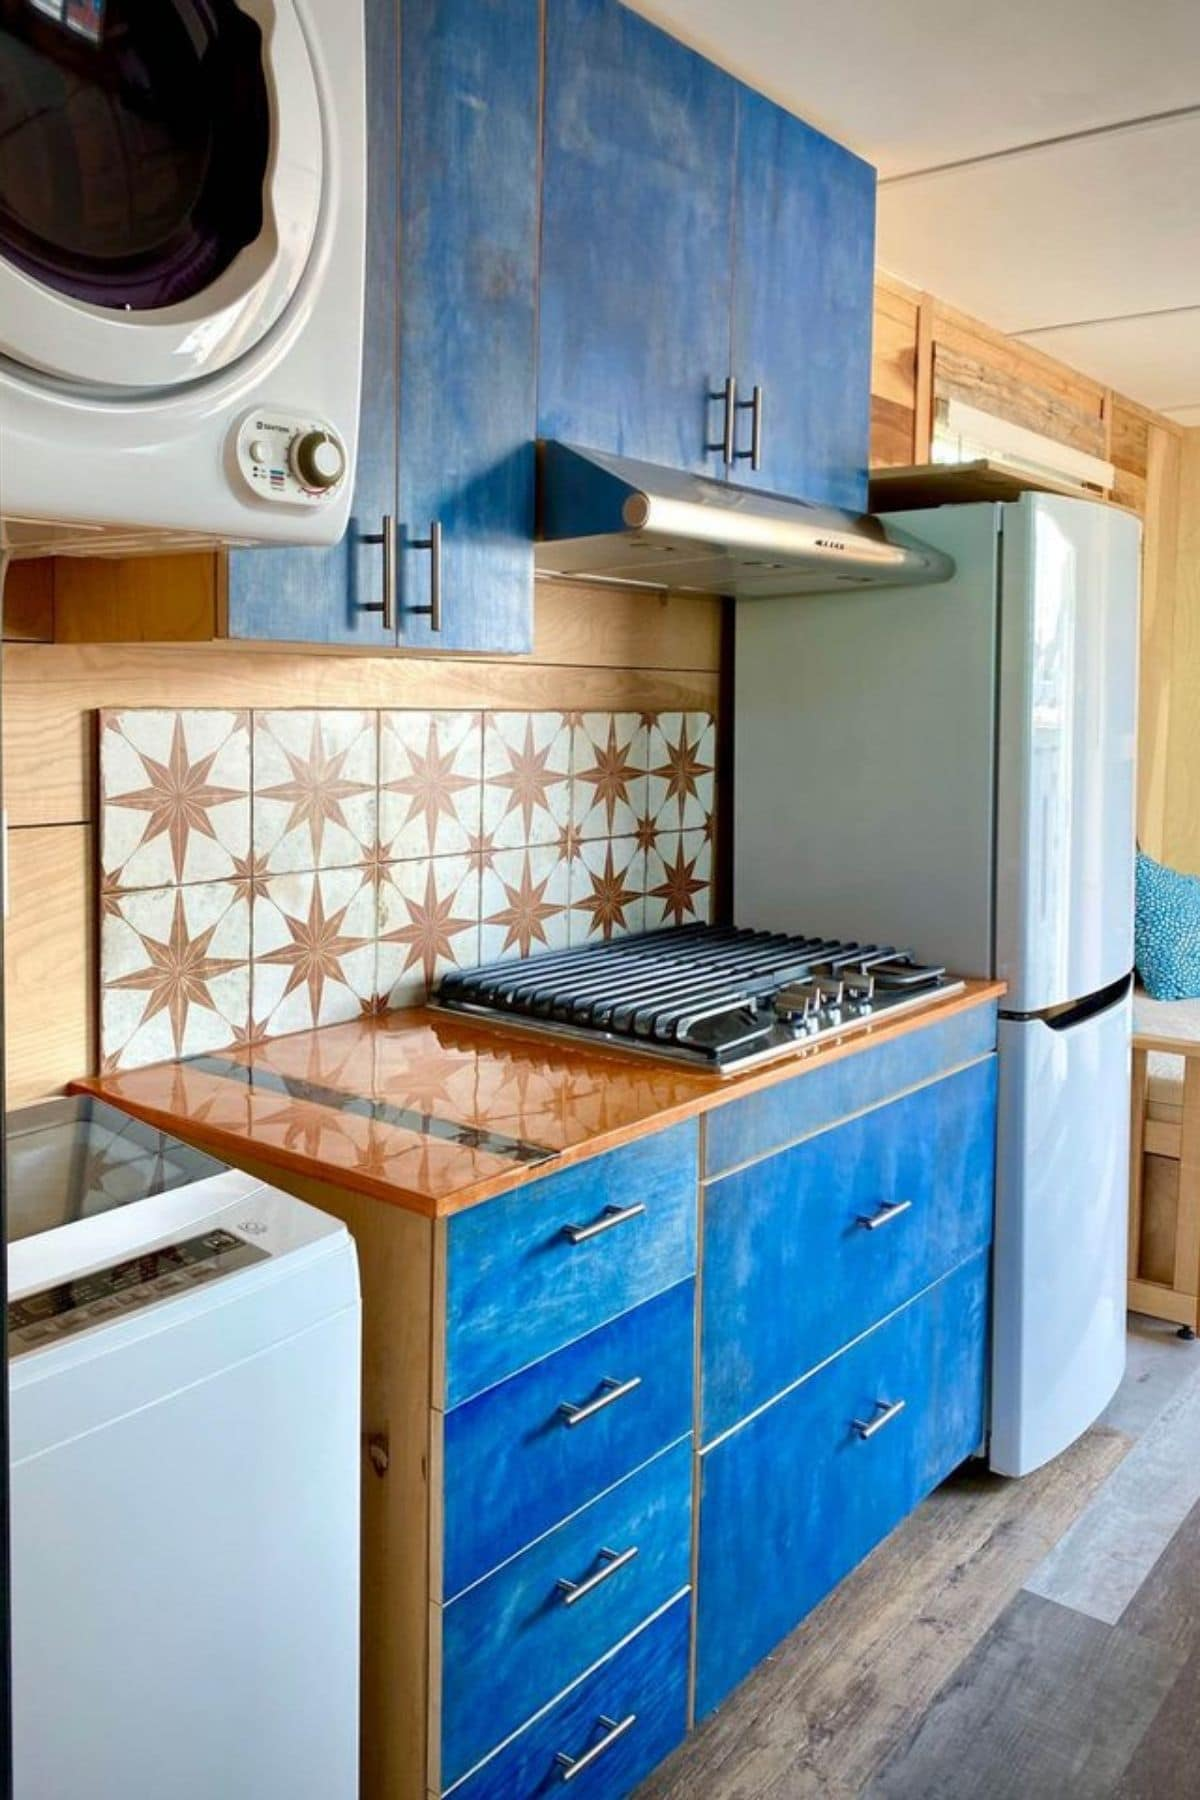 kitchen with orange and whtie tile backsplash and blue cabinets